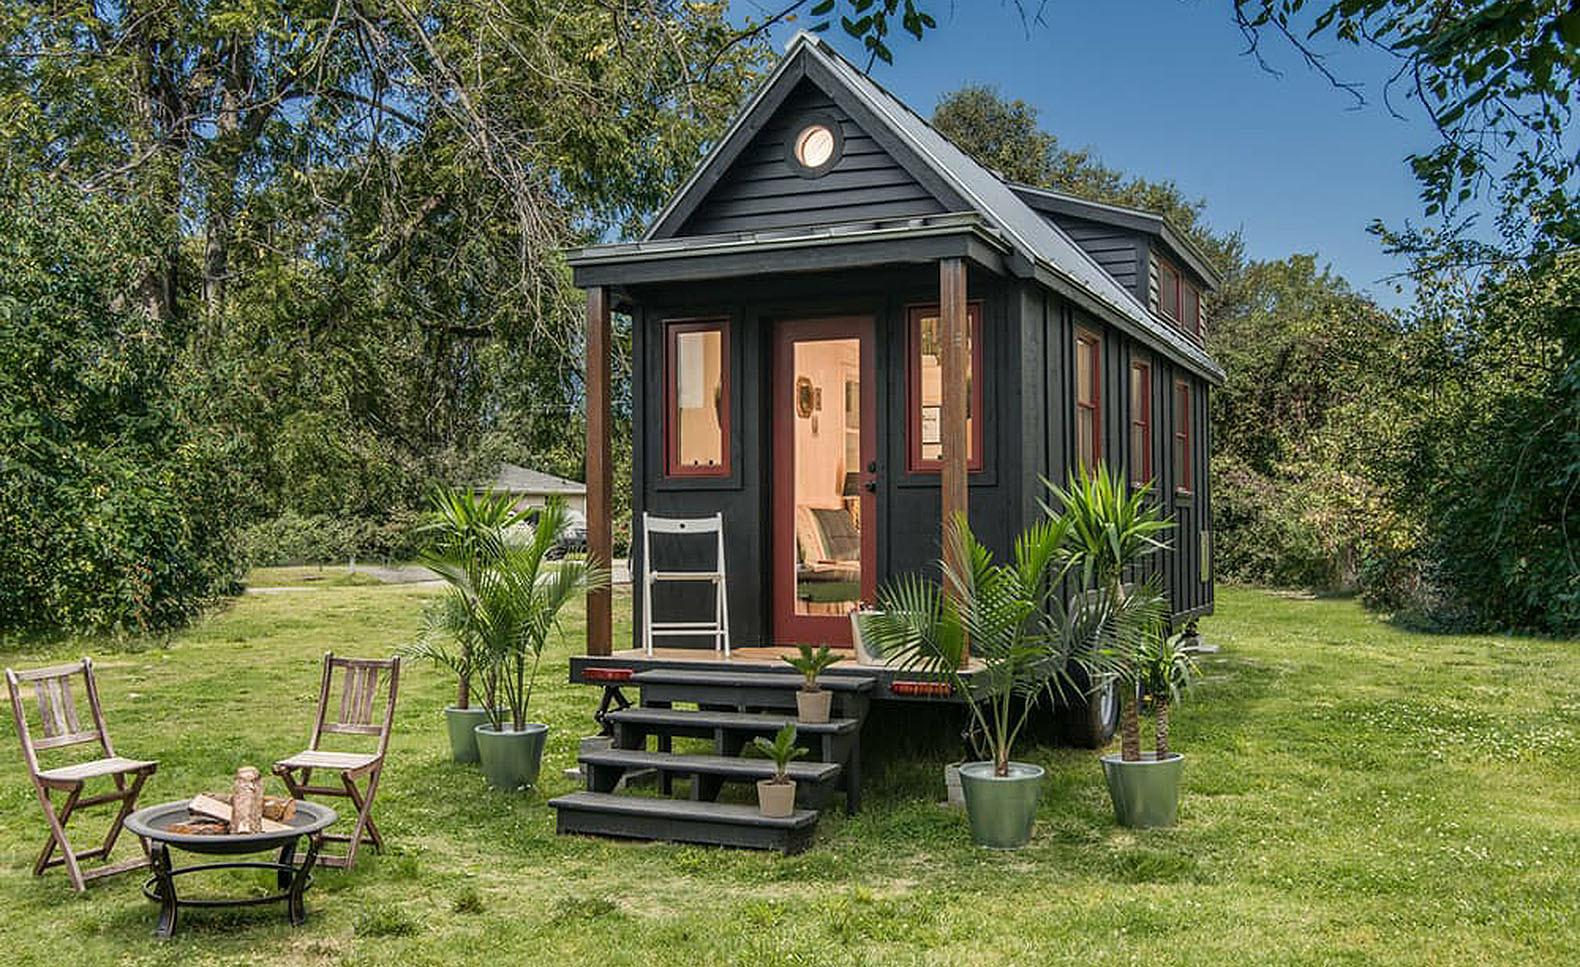 Towable Riverside Tiny House Packs Every Conventional